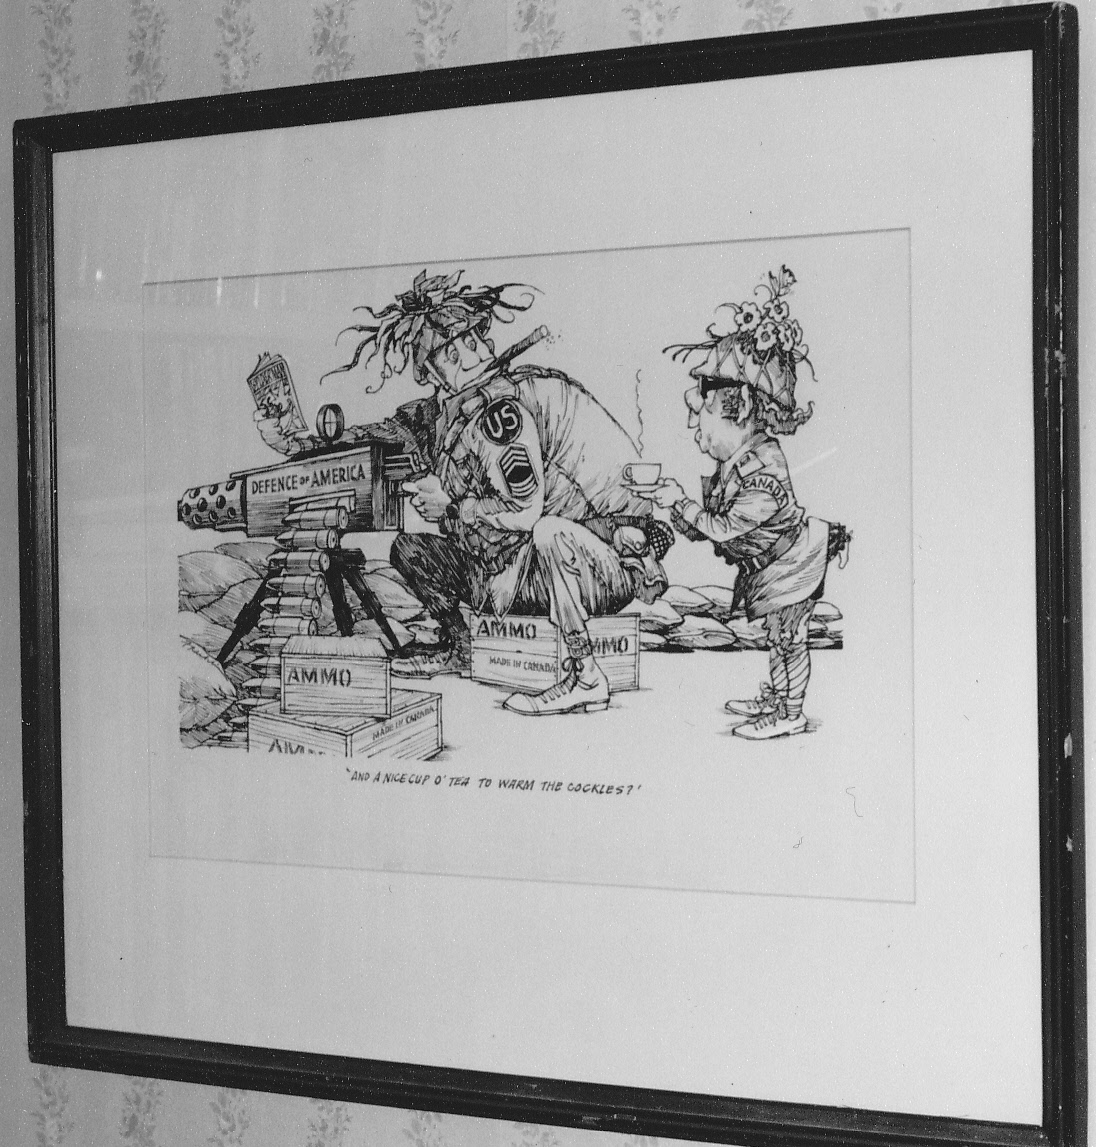 C:\Users\Robert\Documents\ART COLLECTION\FRANKLIN Ed, editorial cartoon, ink on board, n.d. 31cmhX46cmw.jpg